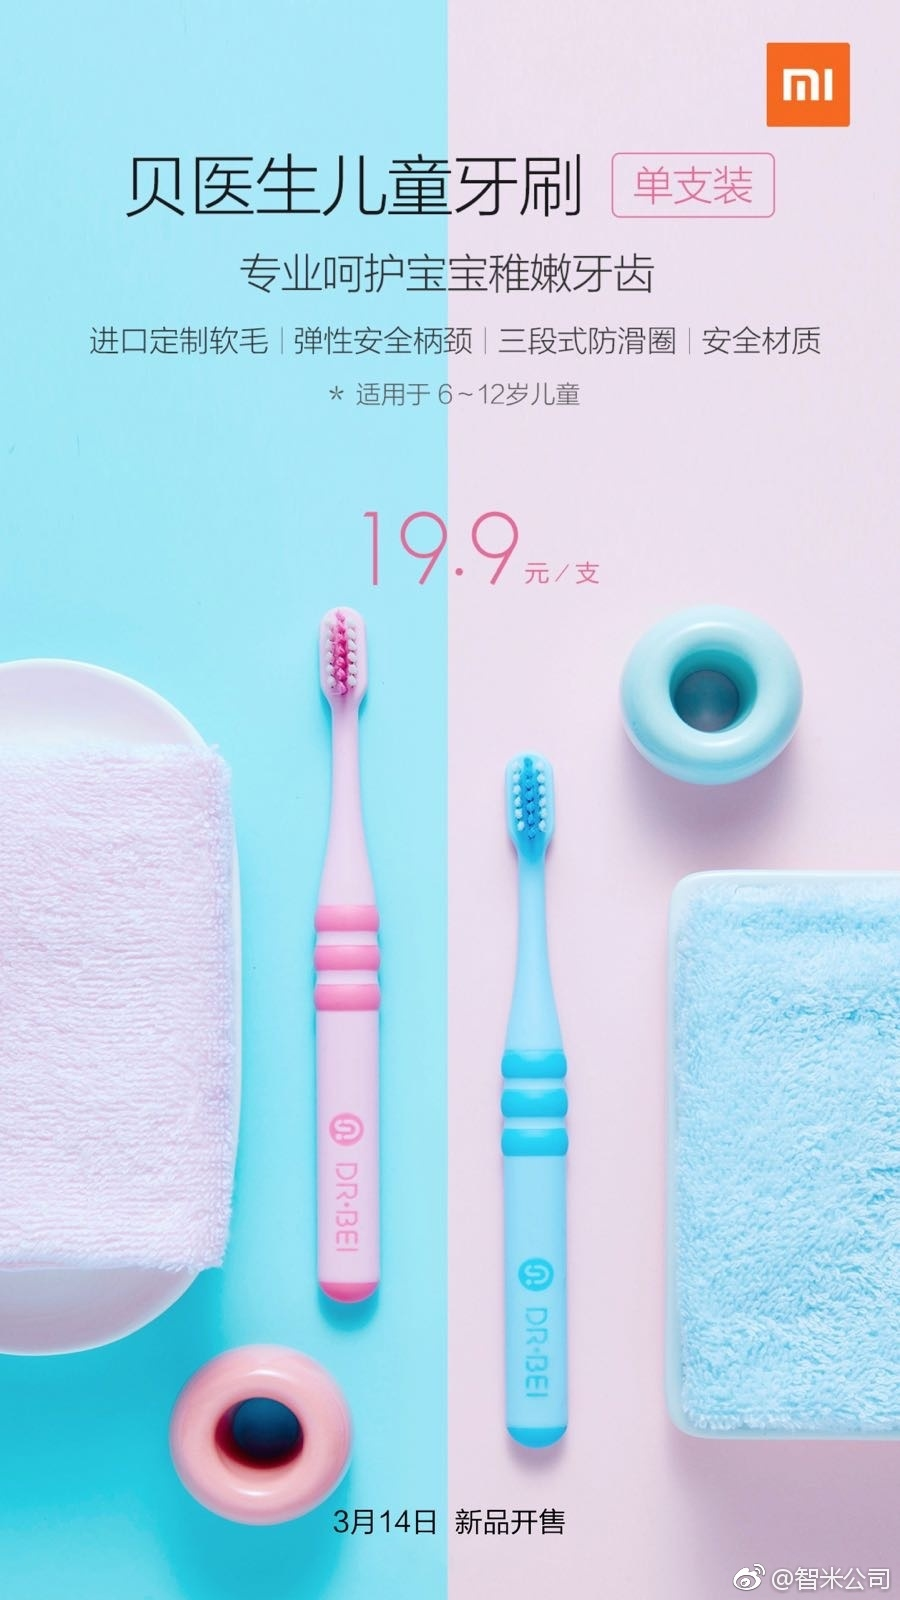 Dr. Bei's children's toothbrushes poster